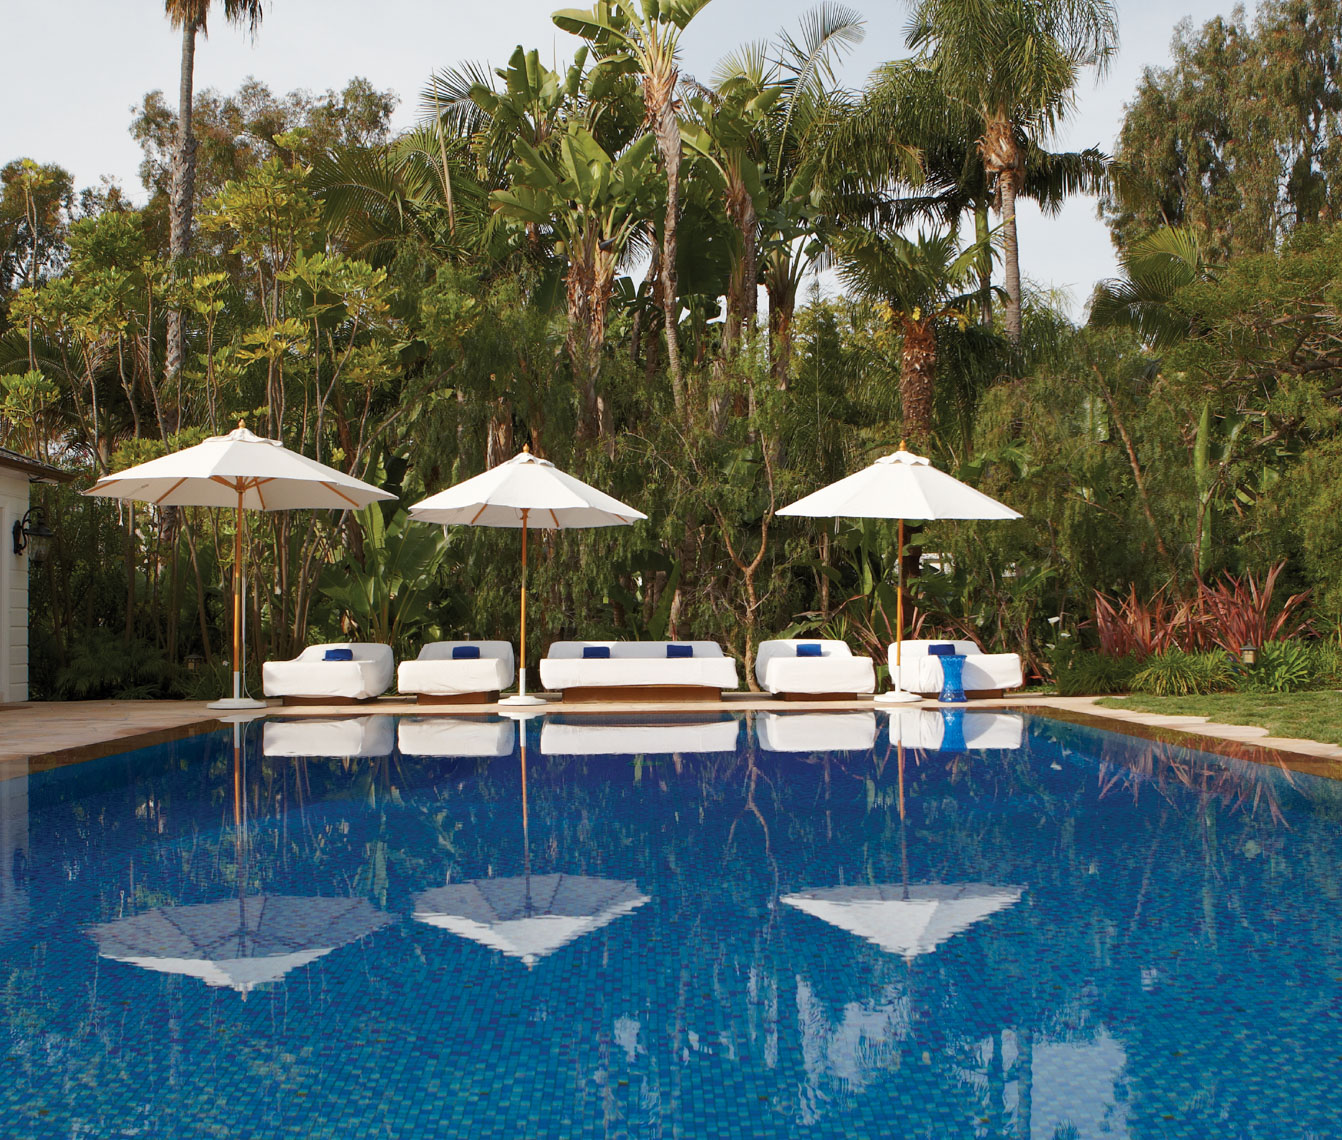 Poolside outdoor furniture with white umbrellas and blue water